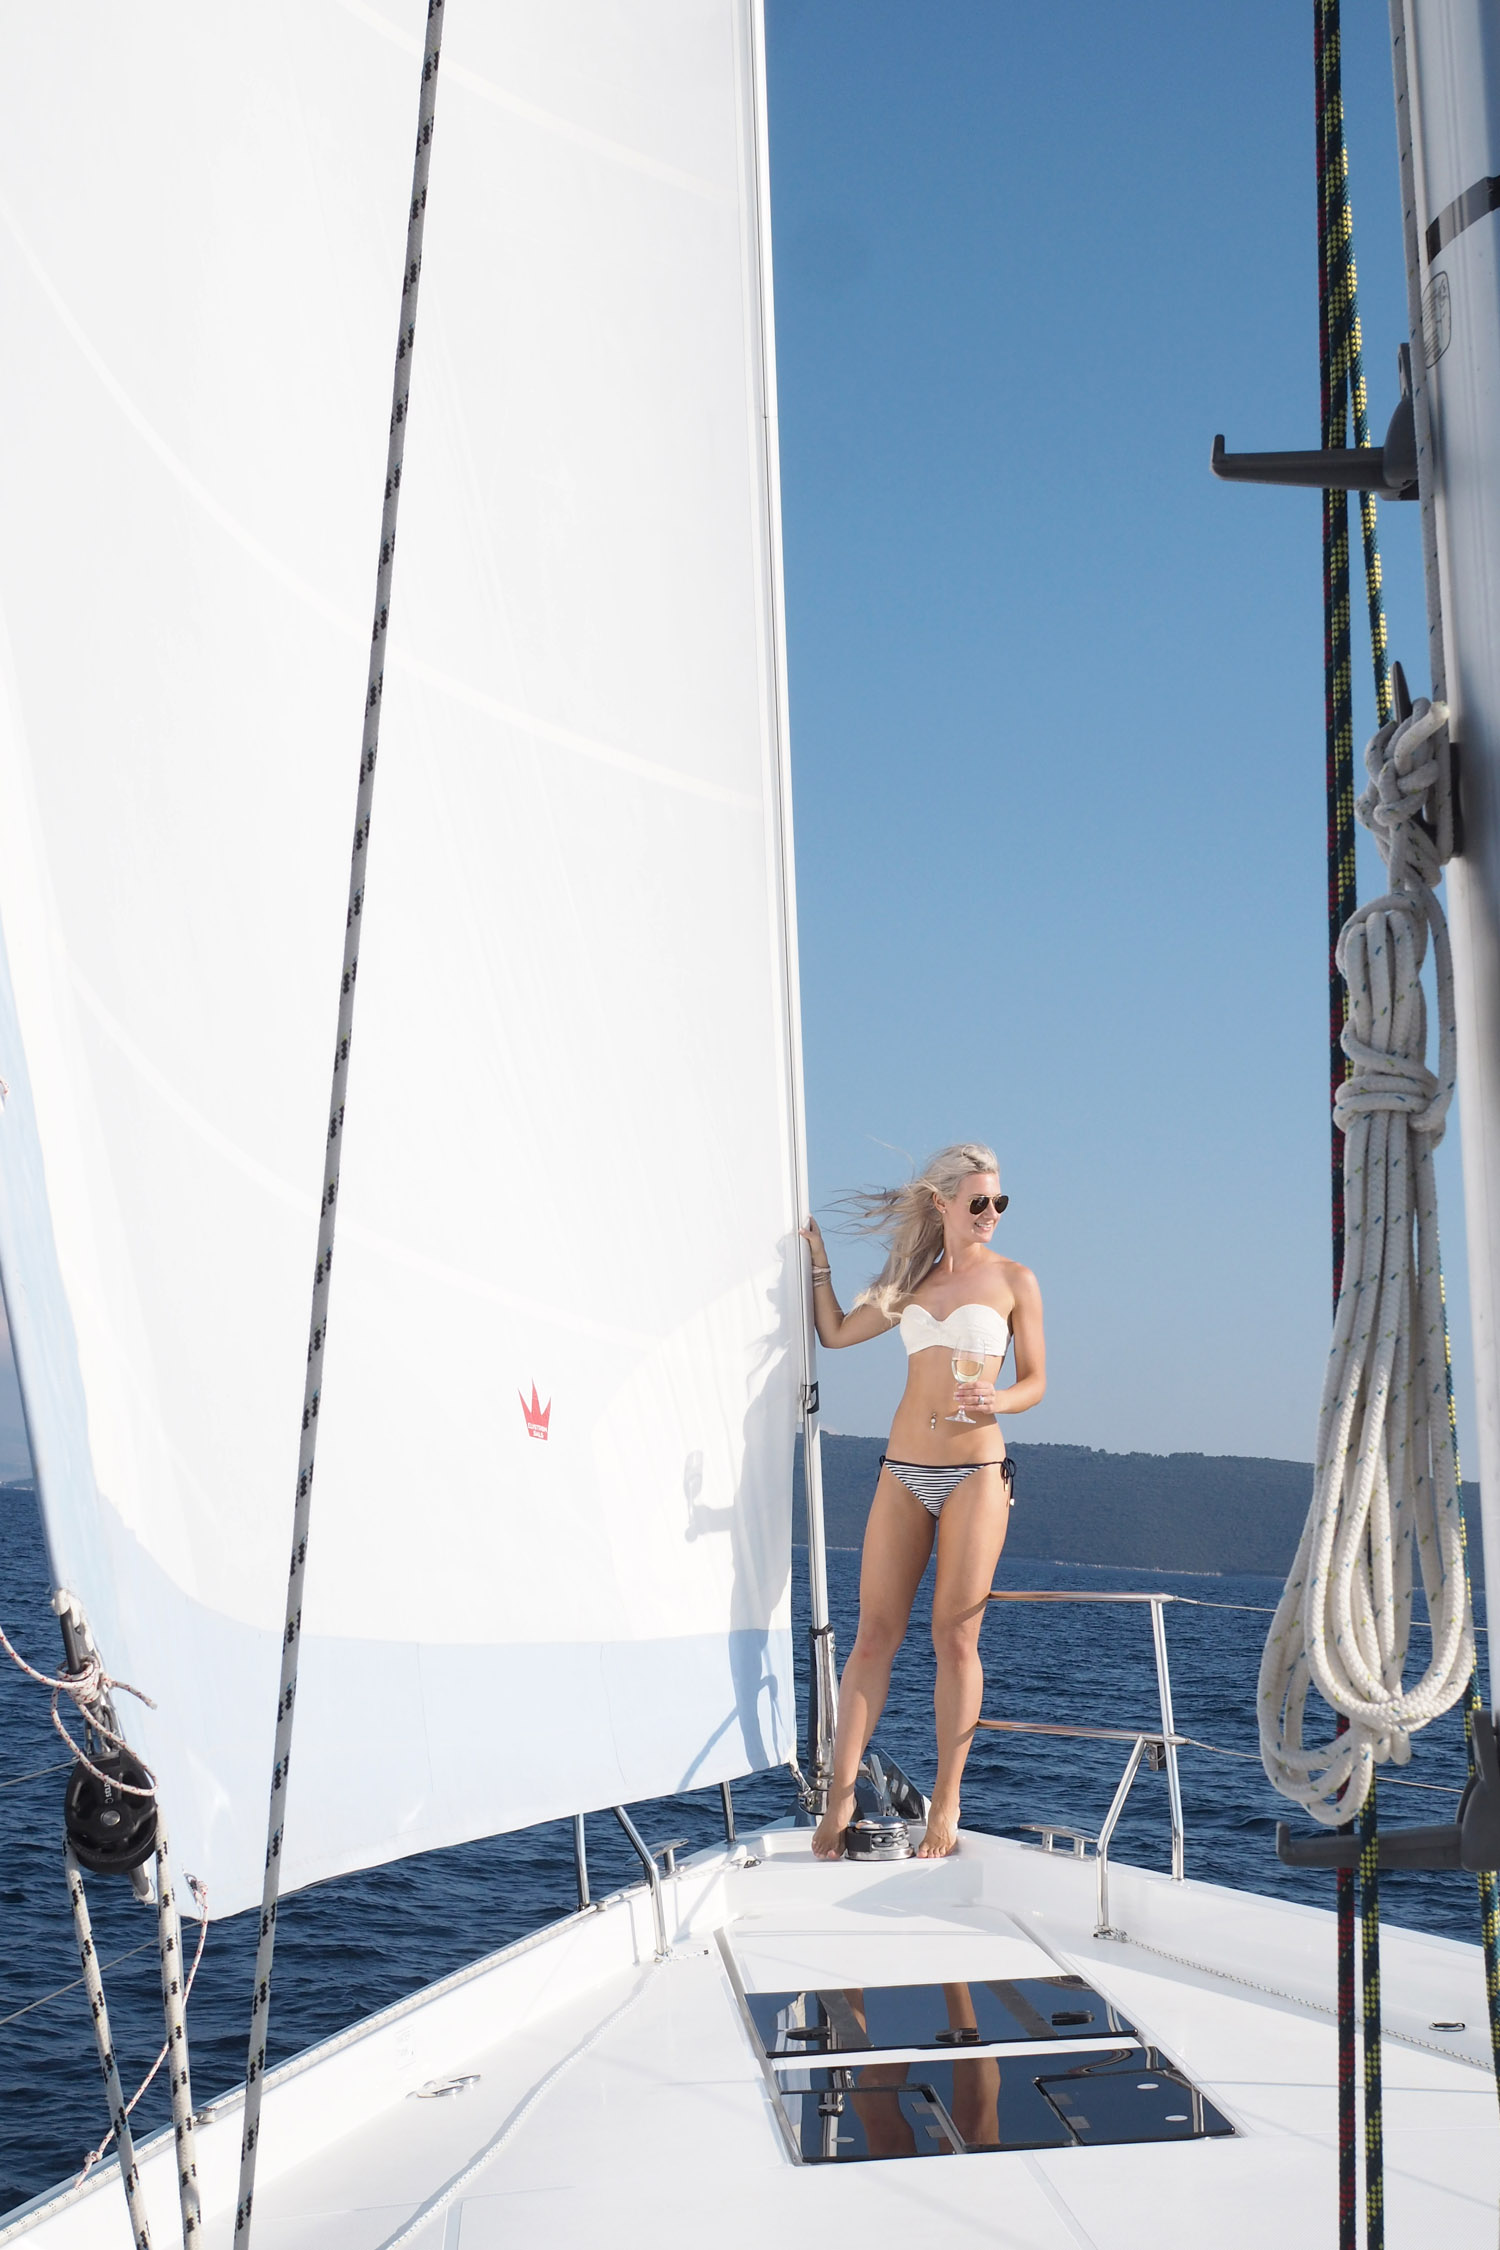 Char and the city - Sailing in Croatia - Navigare Yachting - Hanse 575 sailboat - //www.idealista.fi/charandthecity/2016/10/02/purjehdus